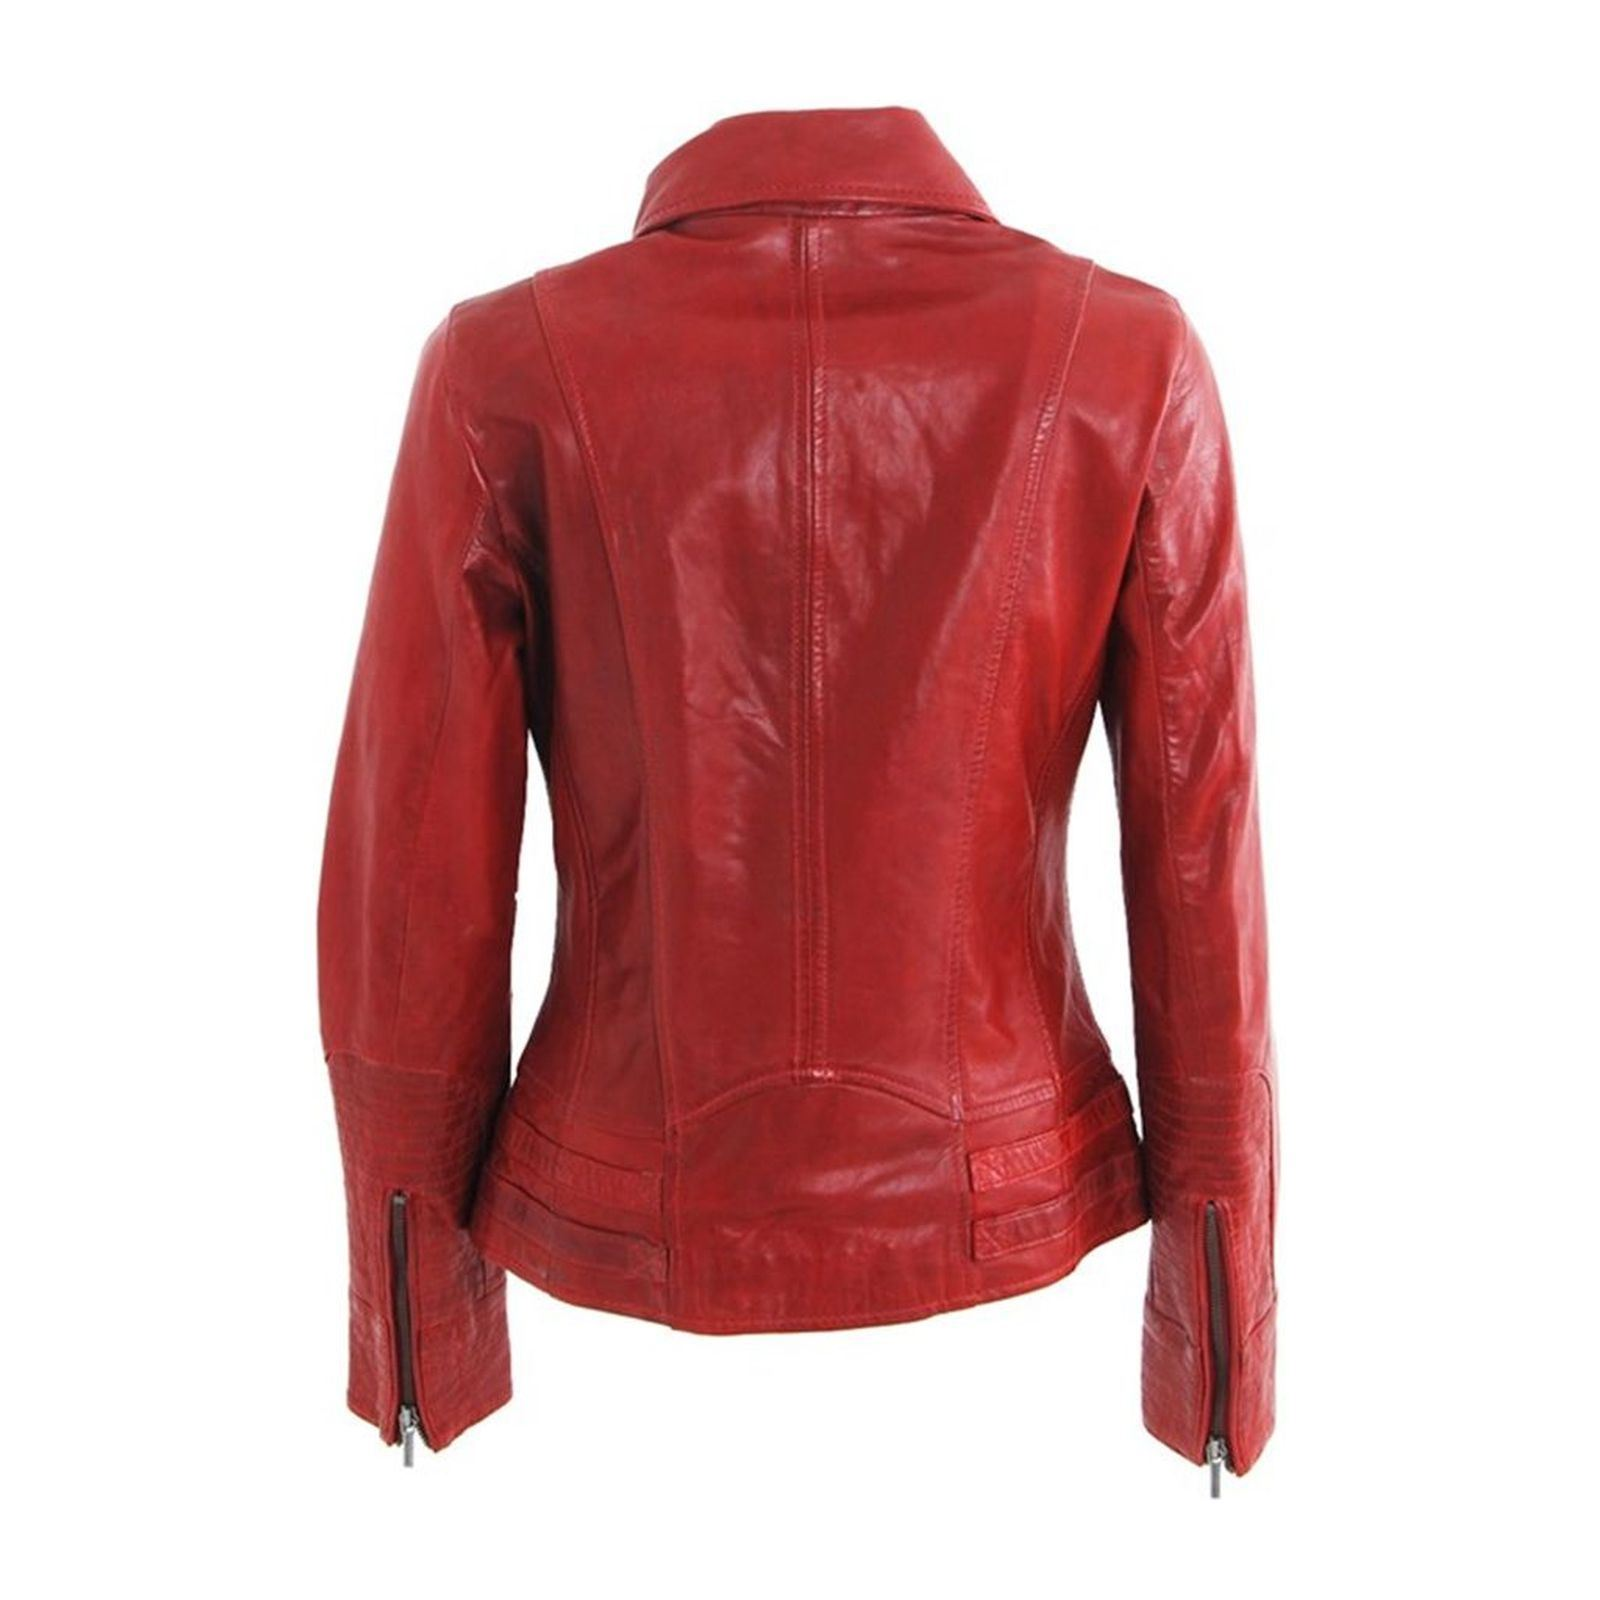 JacketBrandalley Red Dks Dks Juliette Læker rdhCtsQx